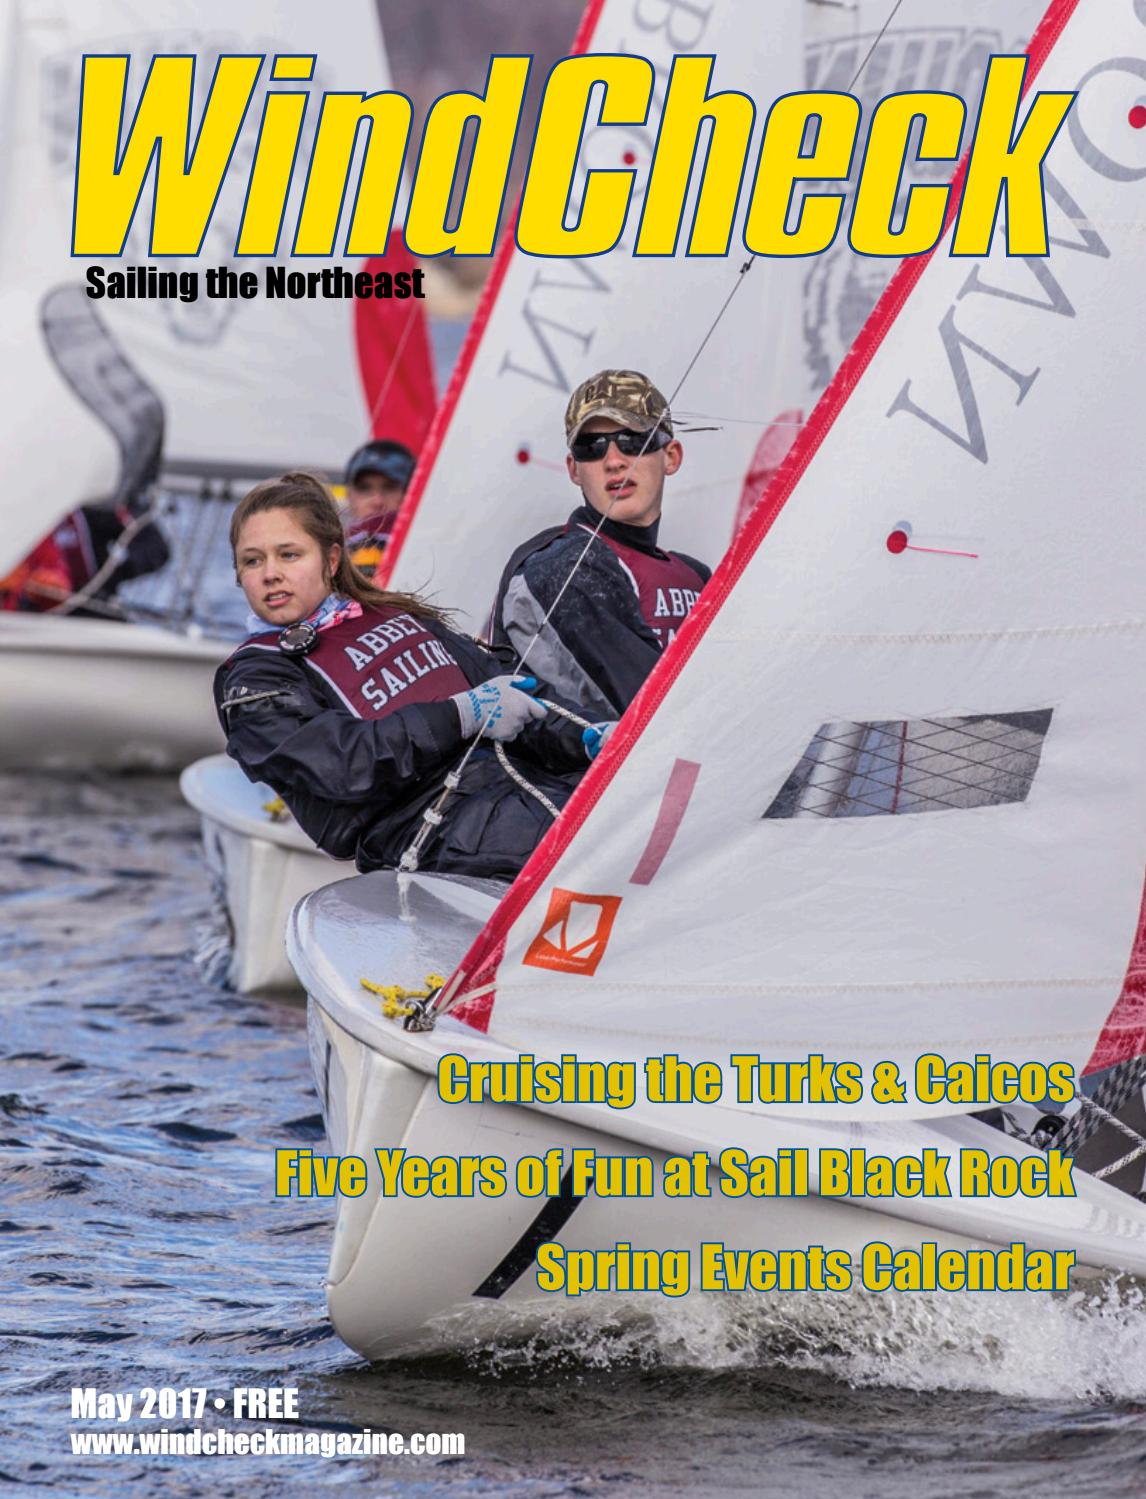 Windcheck may 2017 by Kerstin Fairbend - issuu